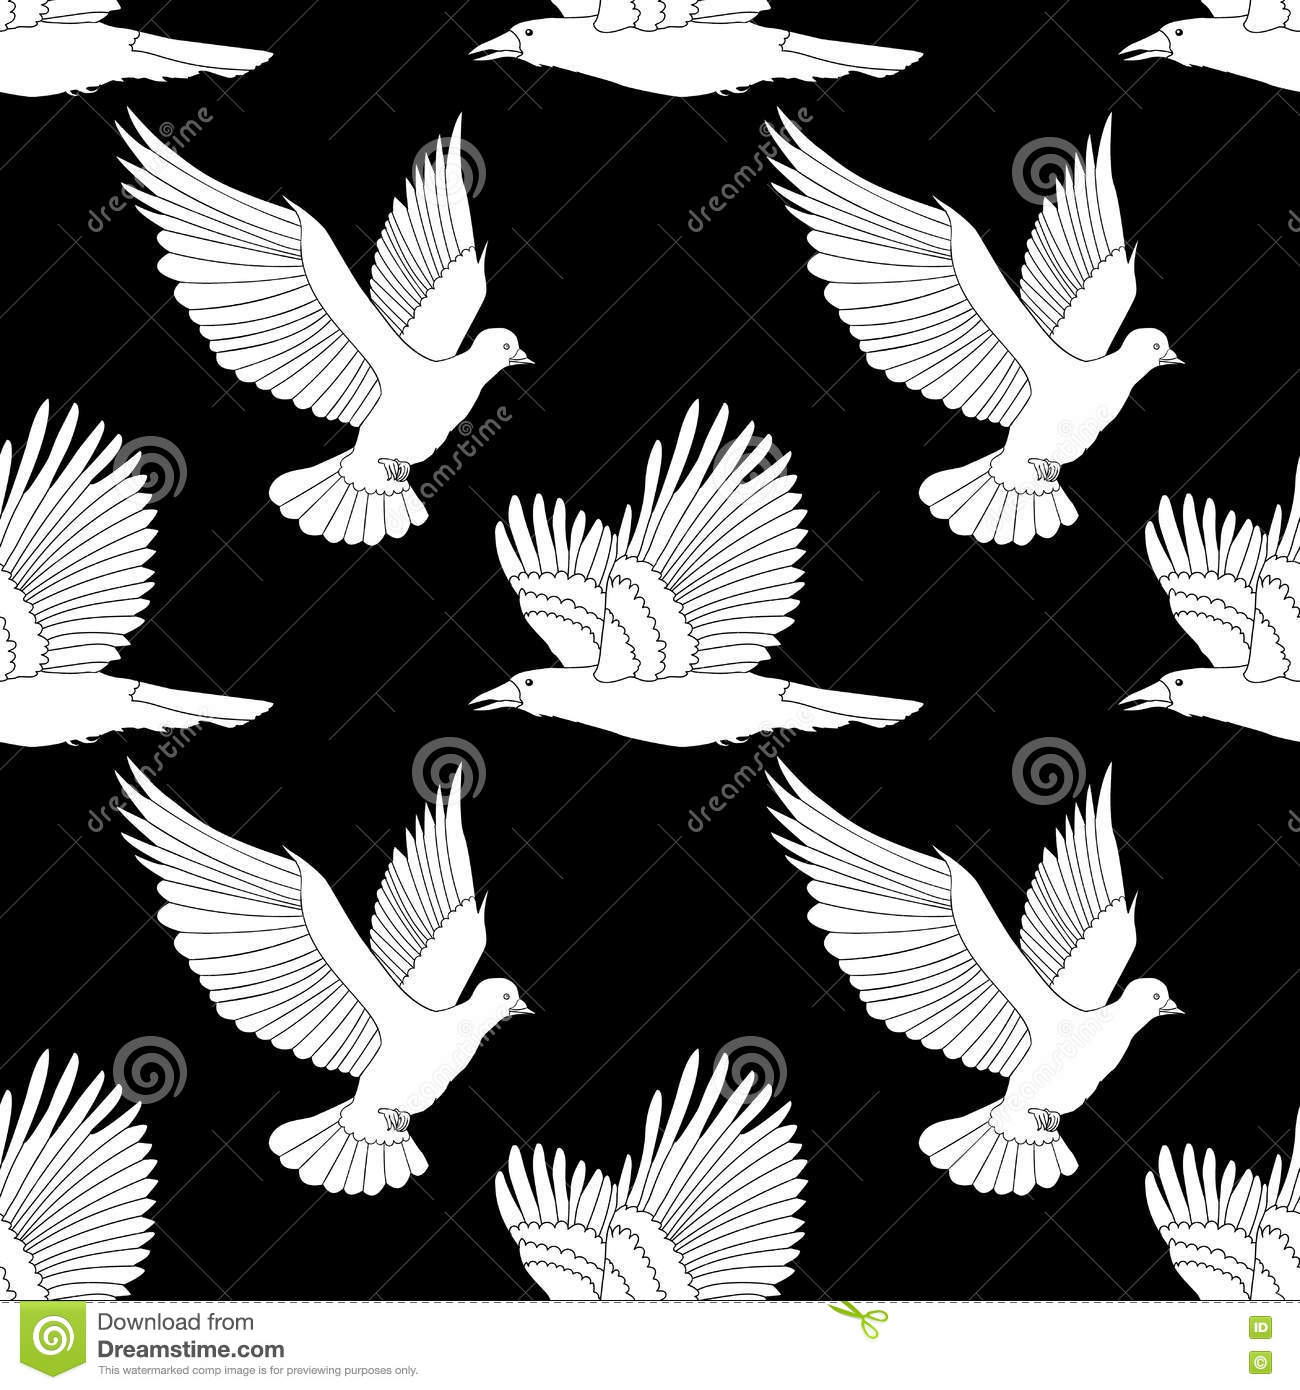 Seamless pattern with flying raven and dove